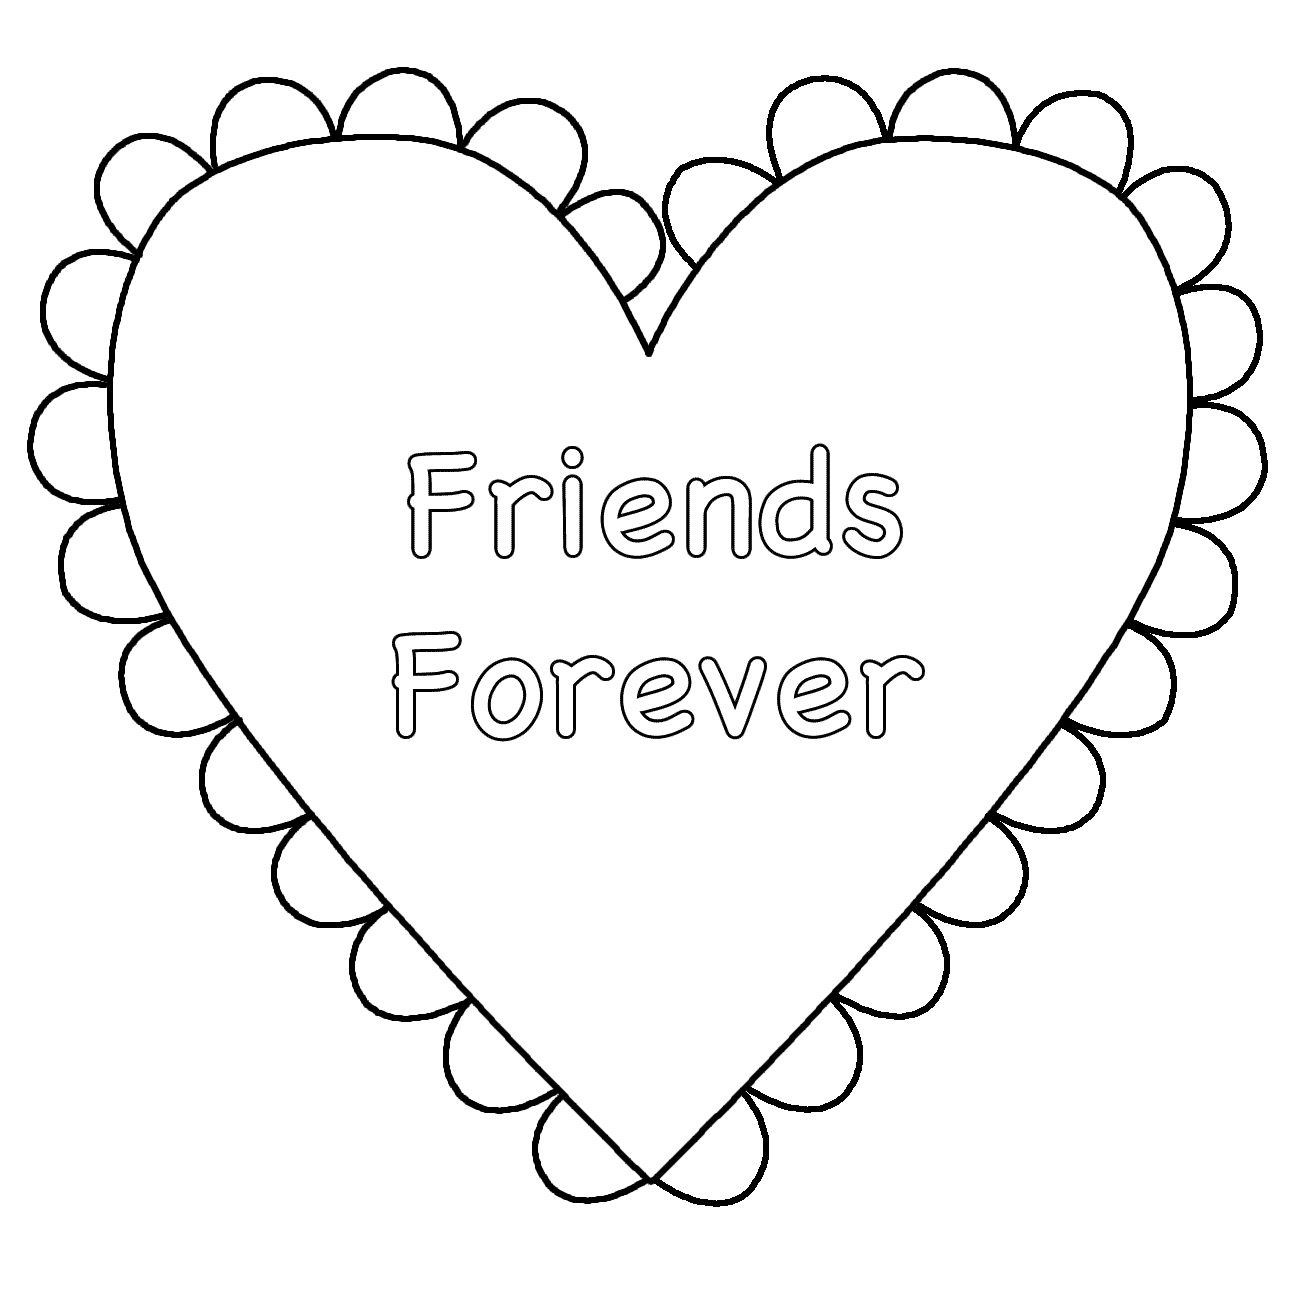 Free coloring pages about friendship - Best Friendship